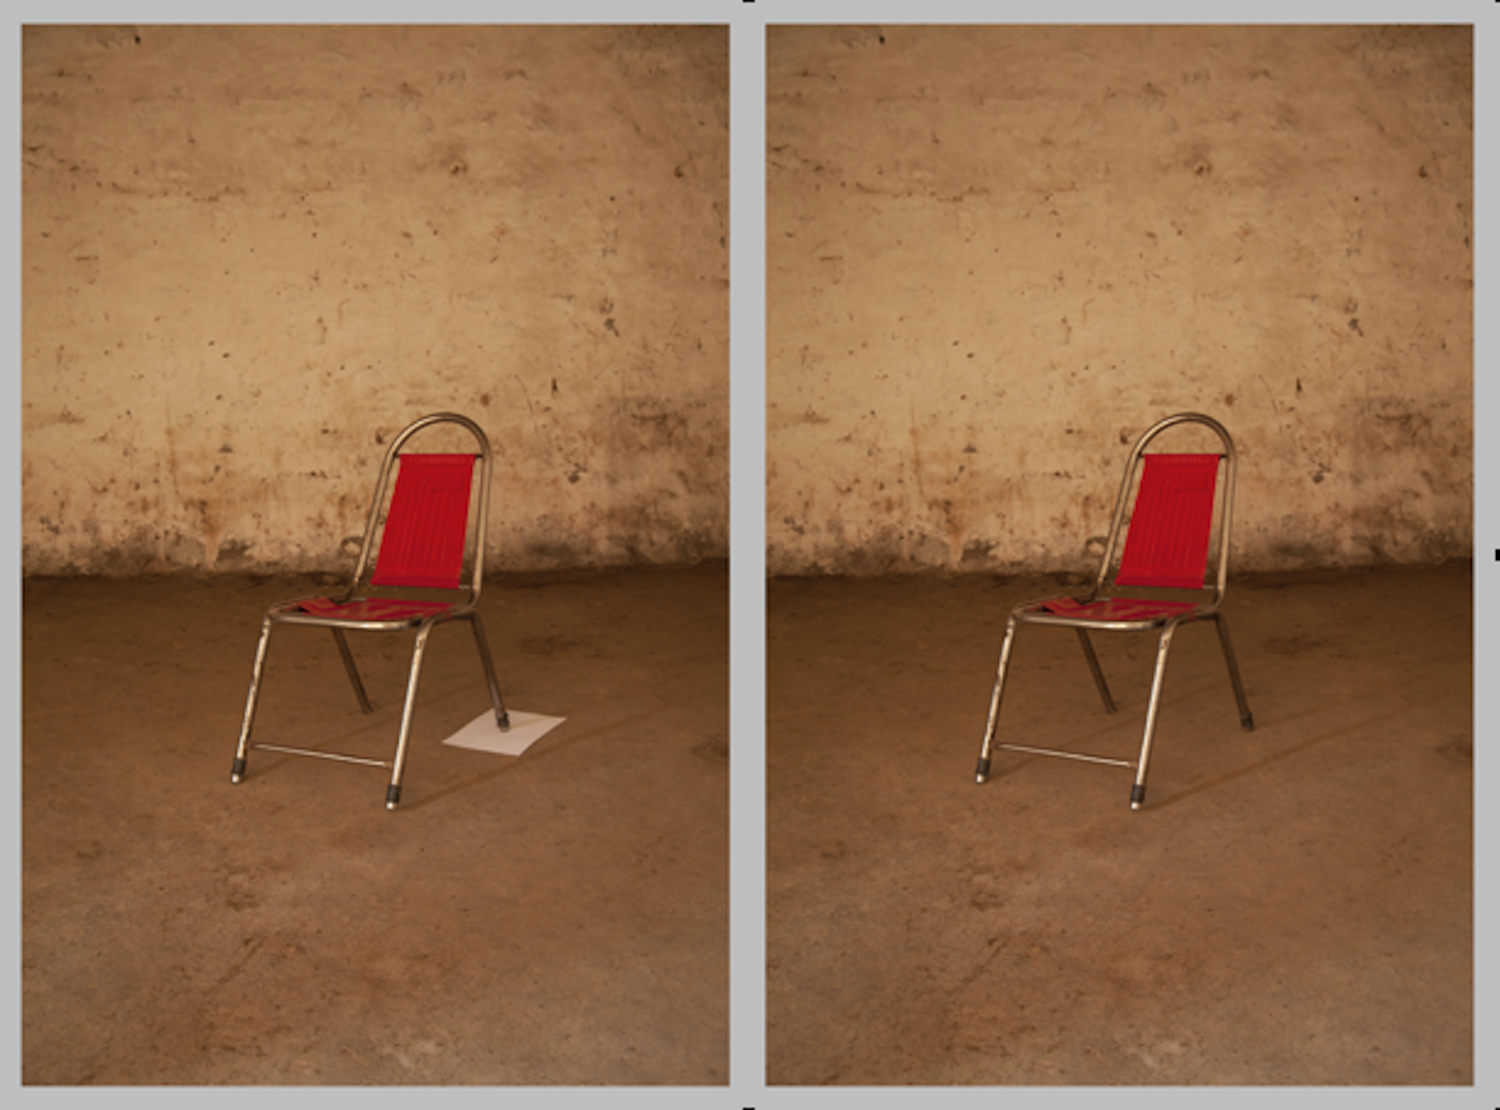 Basir Mahmood  A chair, somewhere  2013 Acrylic face mounted photo rag 64 x 86 cm